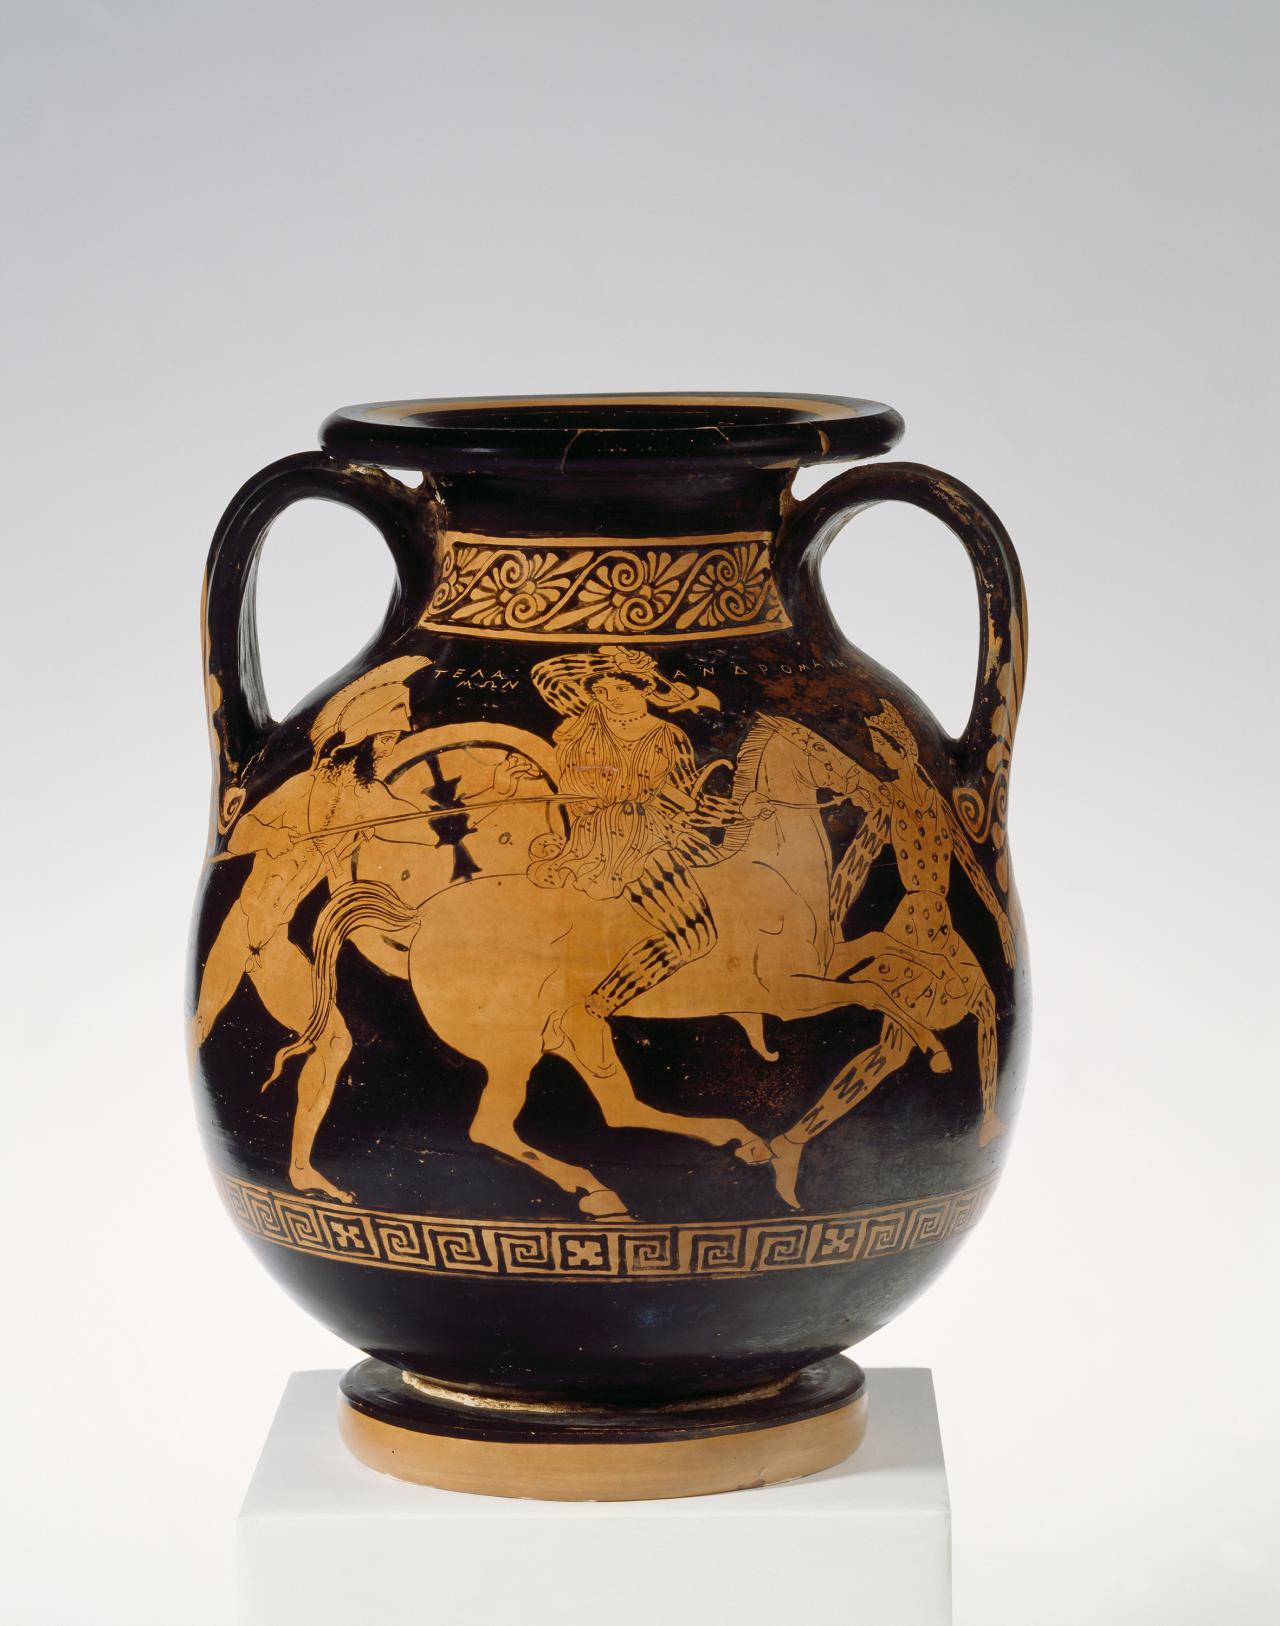 Pelike (Apulian red-figure ware)